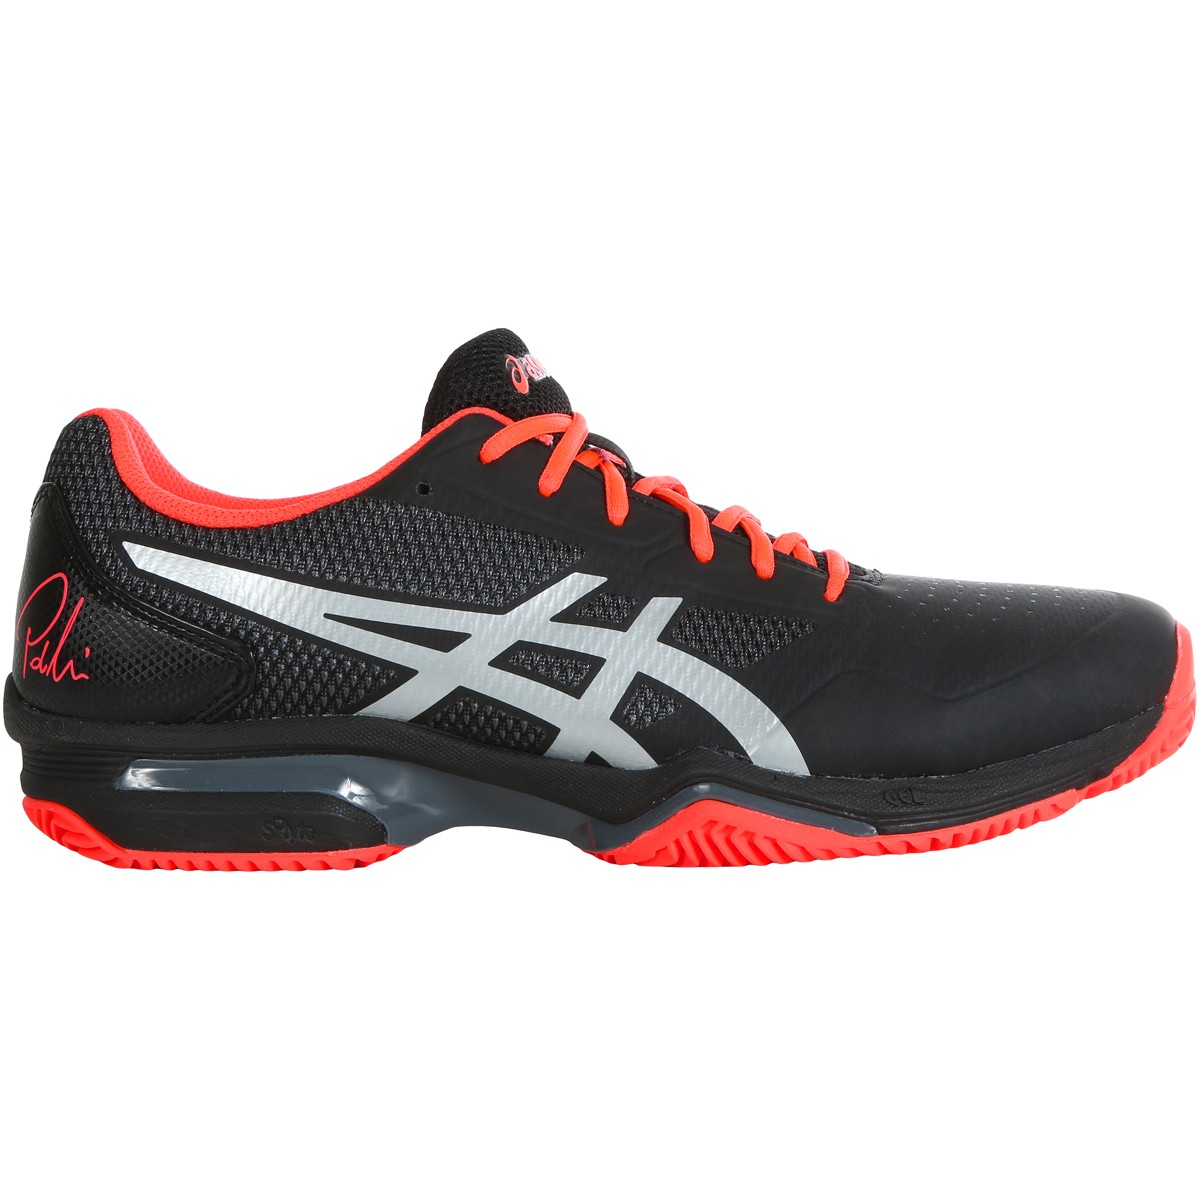 ASICS GEL LIMA CLAY COURTPADEL SHOES ASICS Men's